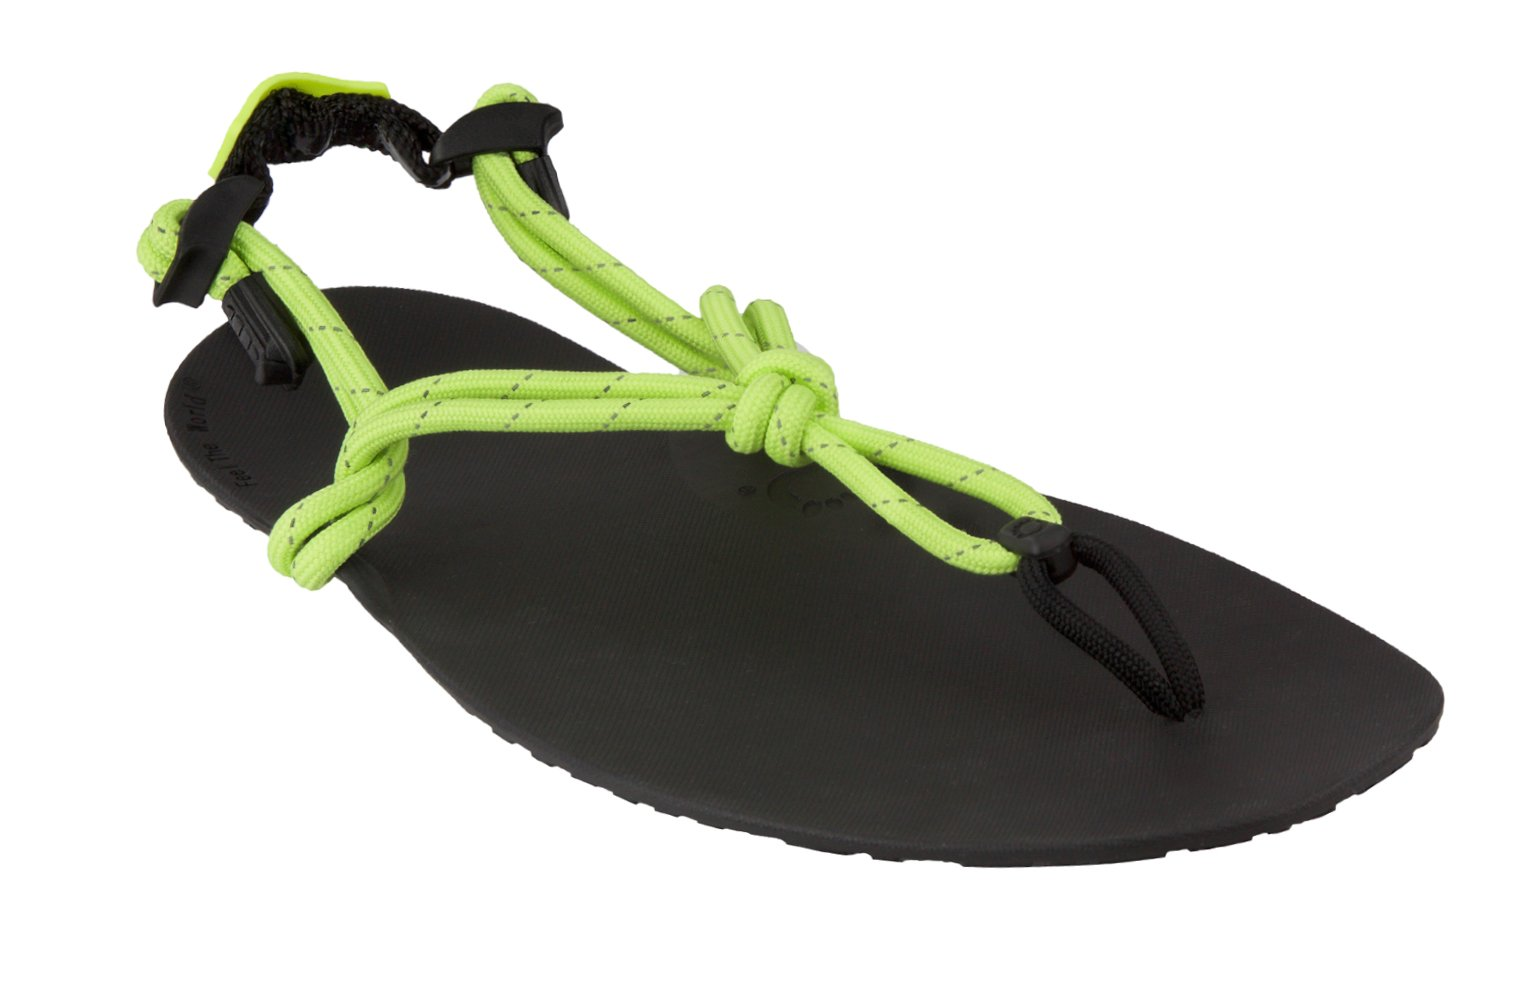 a9763febd9756 Genesis - Lightweight, Packable, Travel-Friendly Sandal - Women